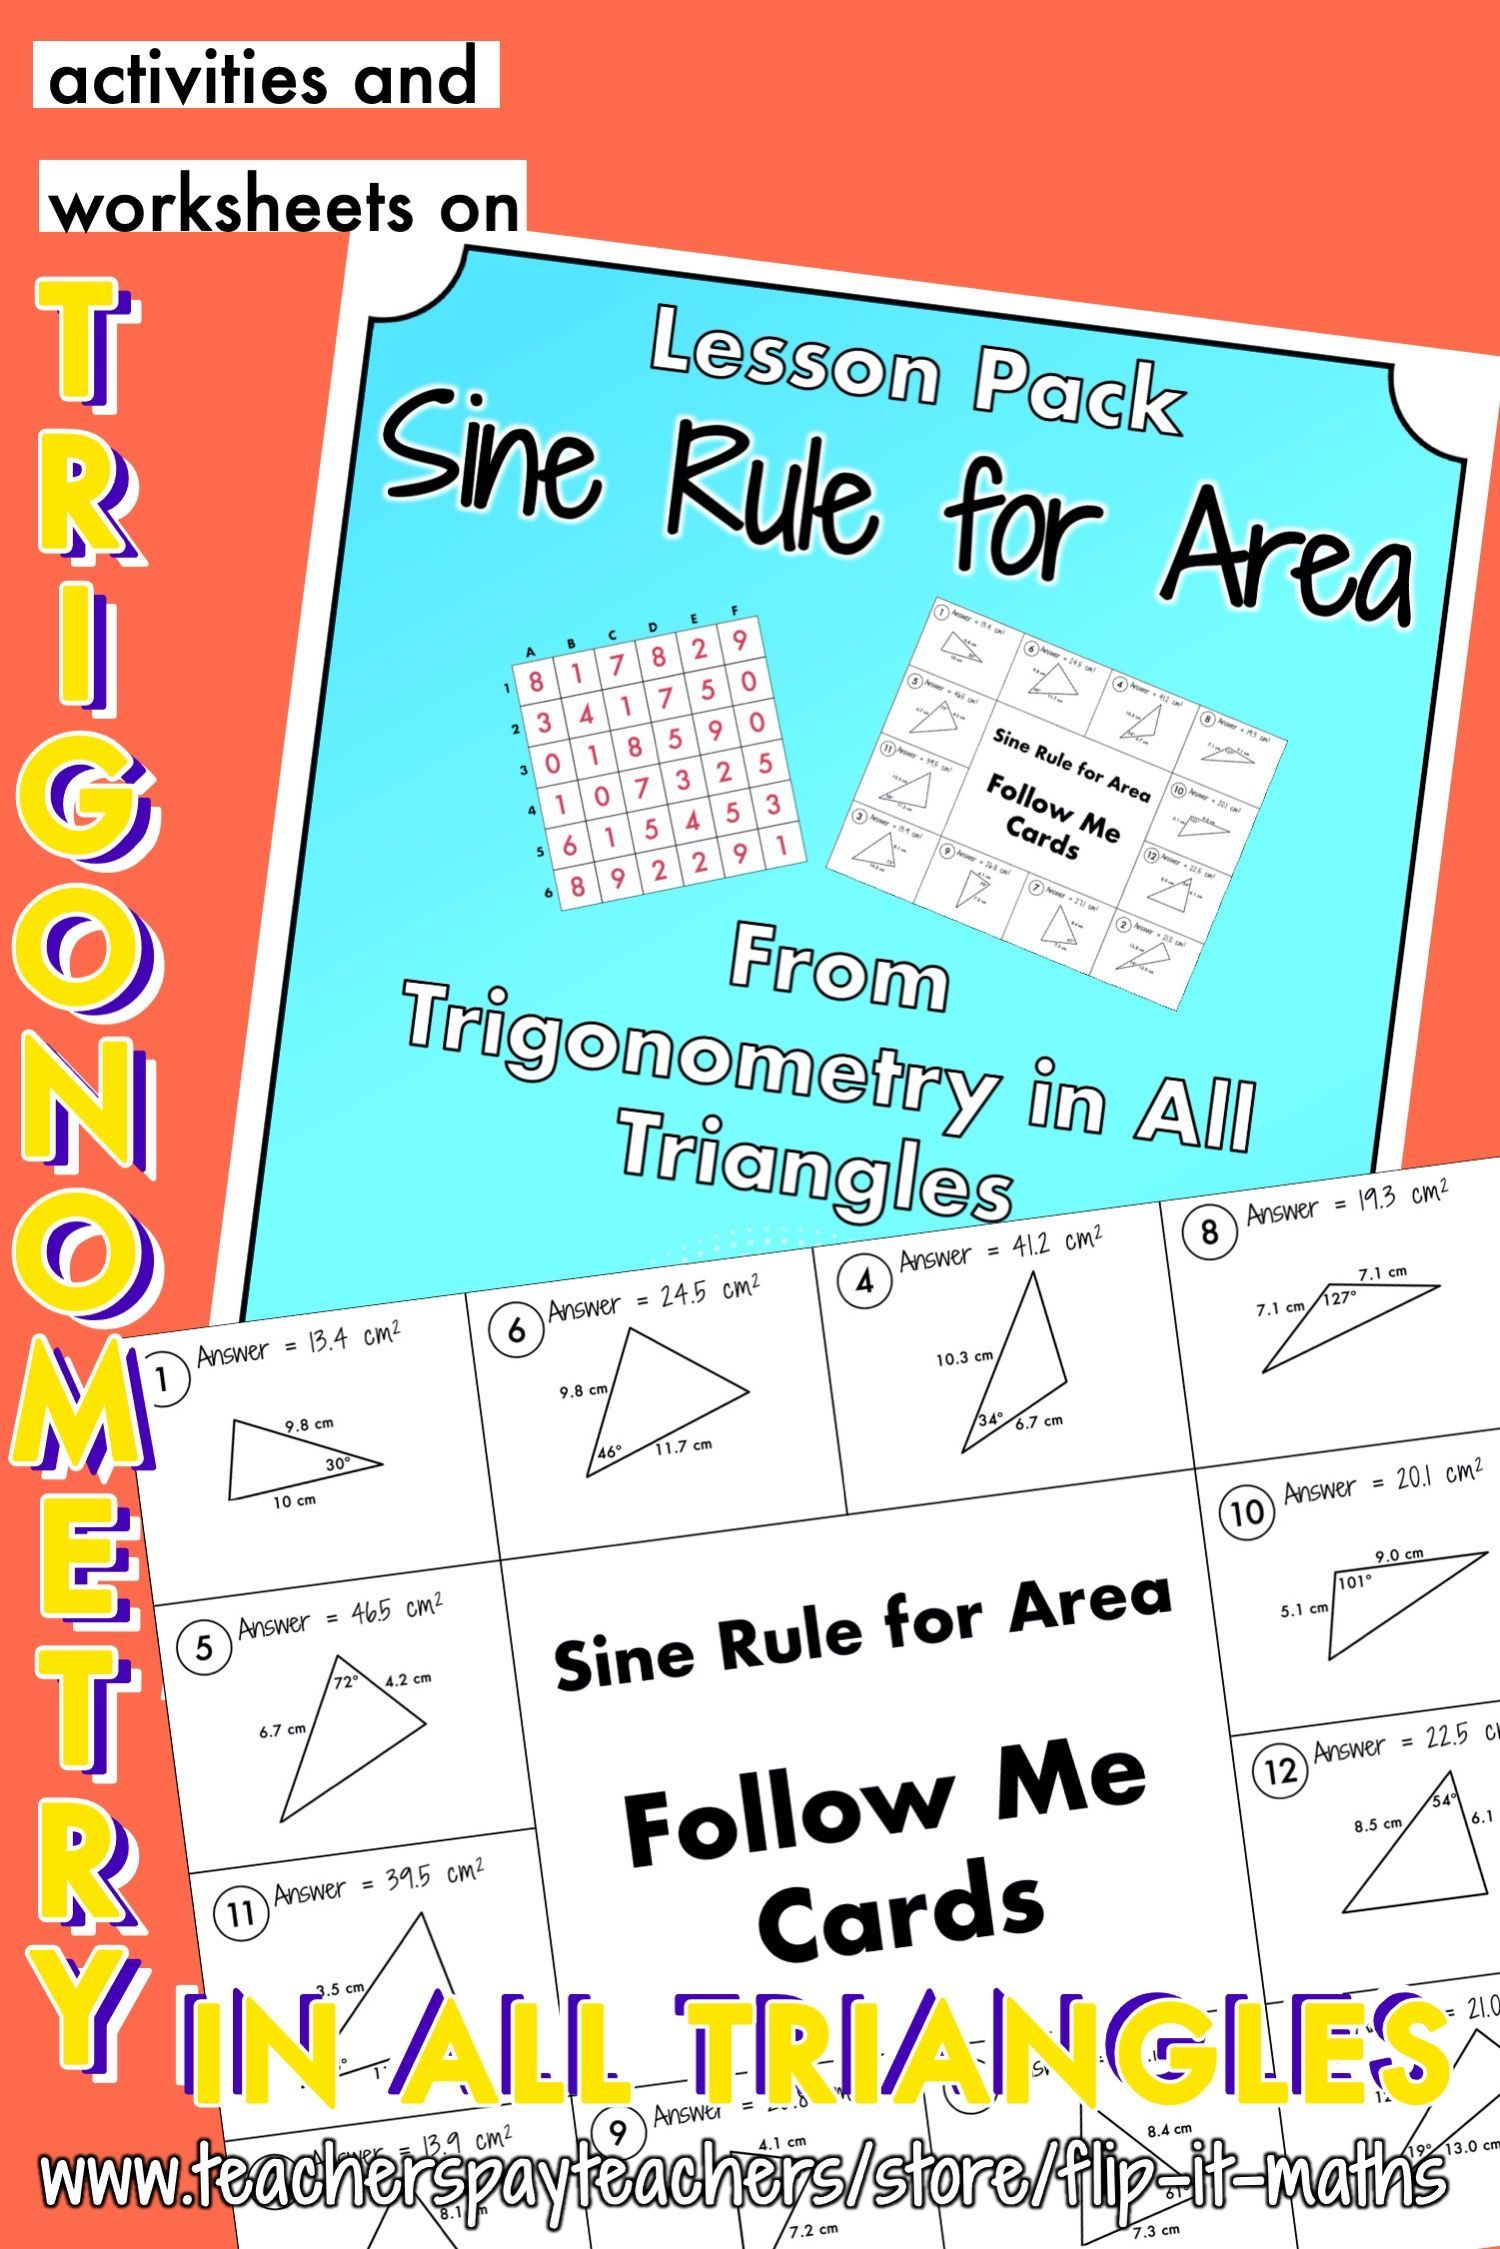 The Sine Rule For Area In